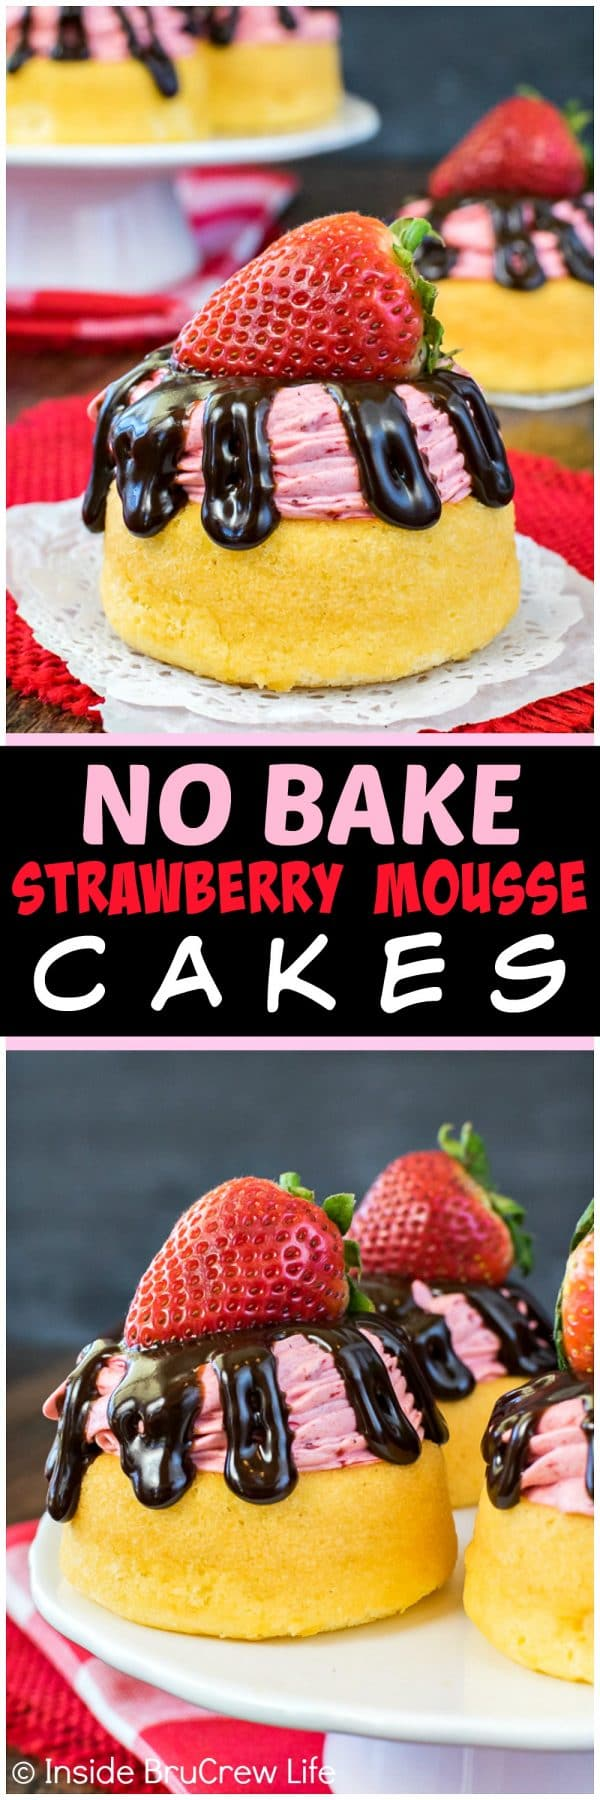 Two pictures of no bake strawberry mousse cakes collaged together with a black text box.